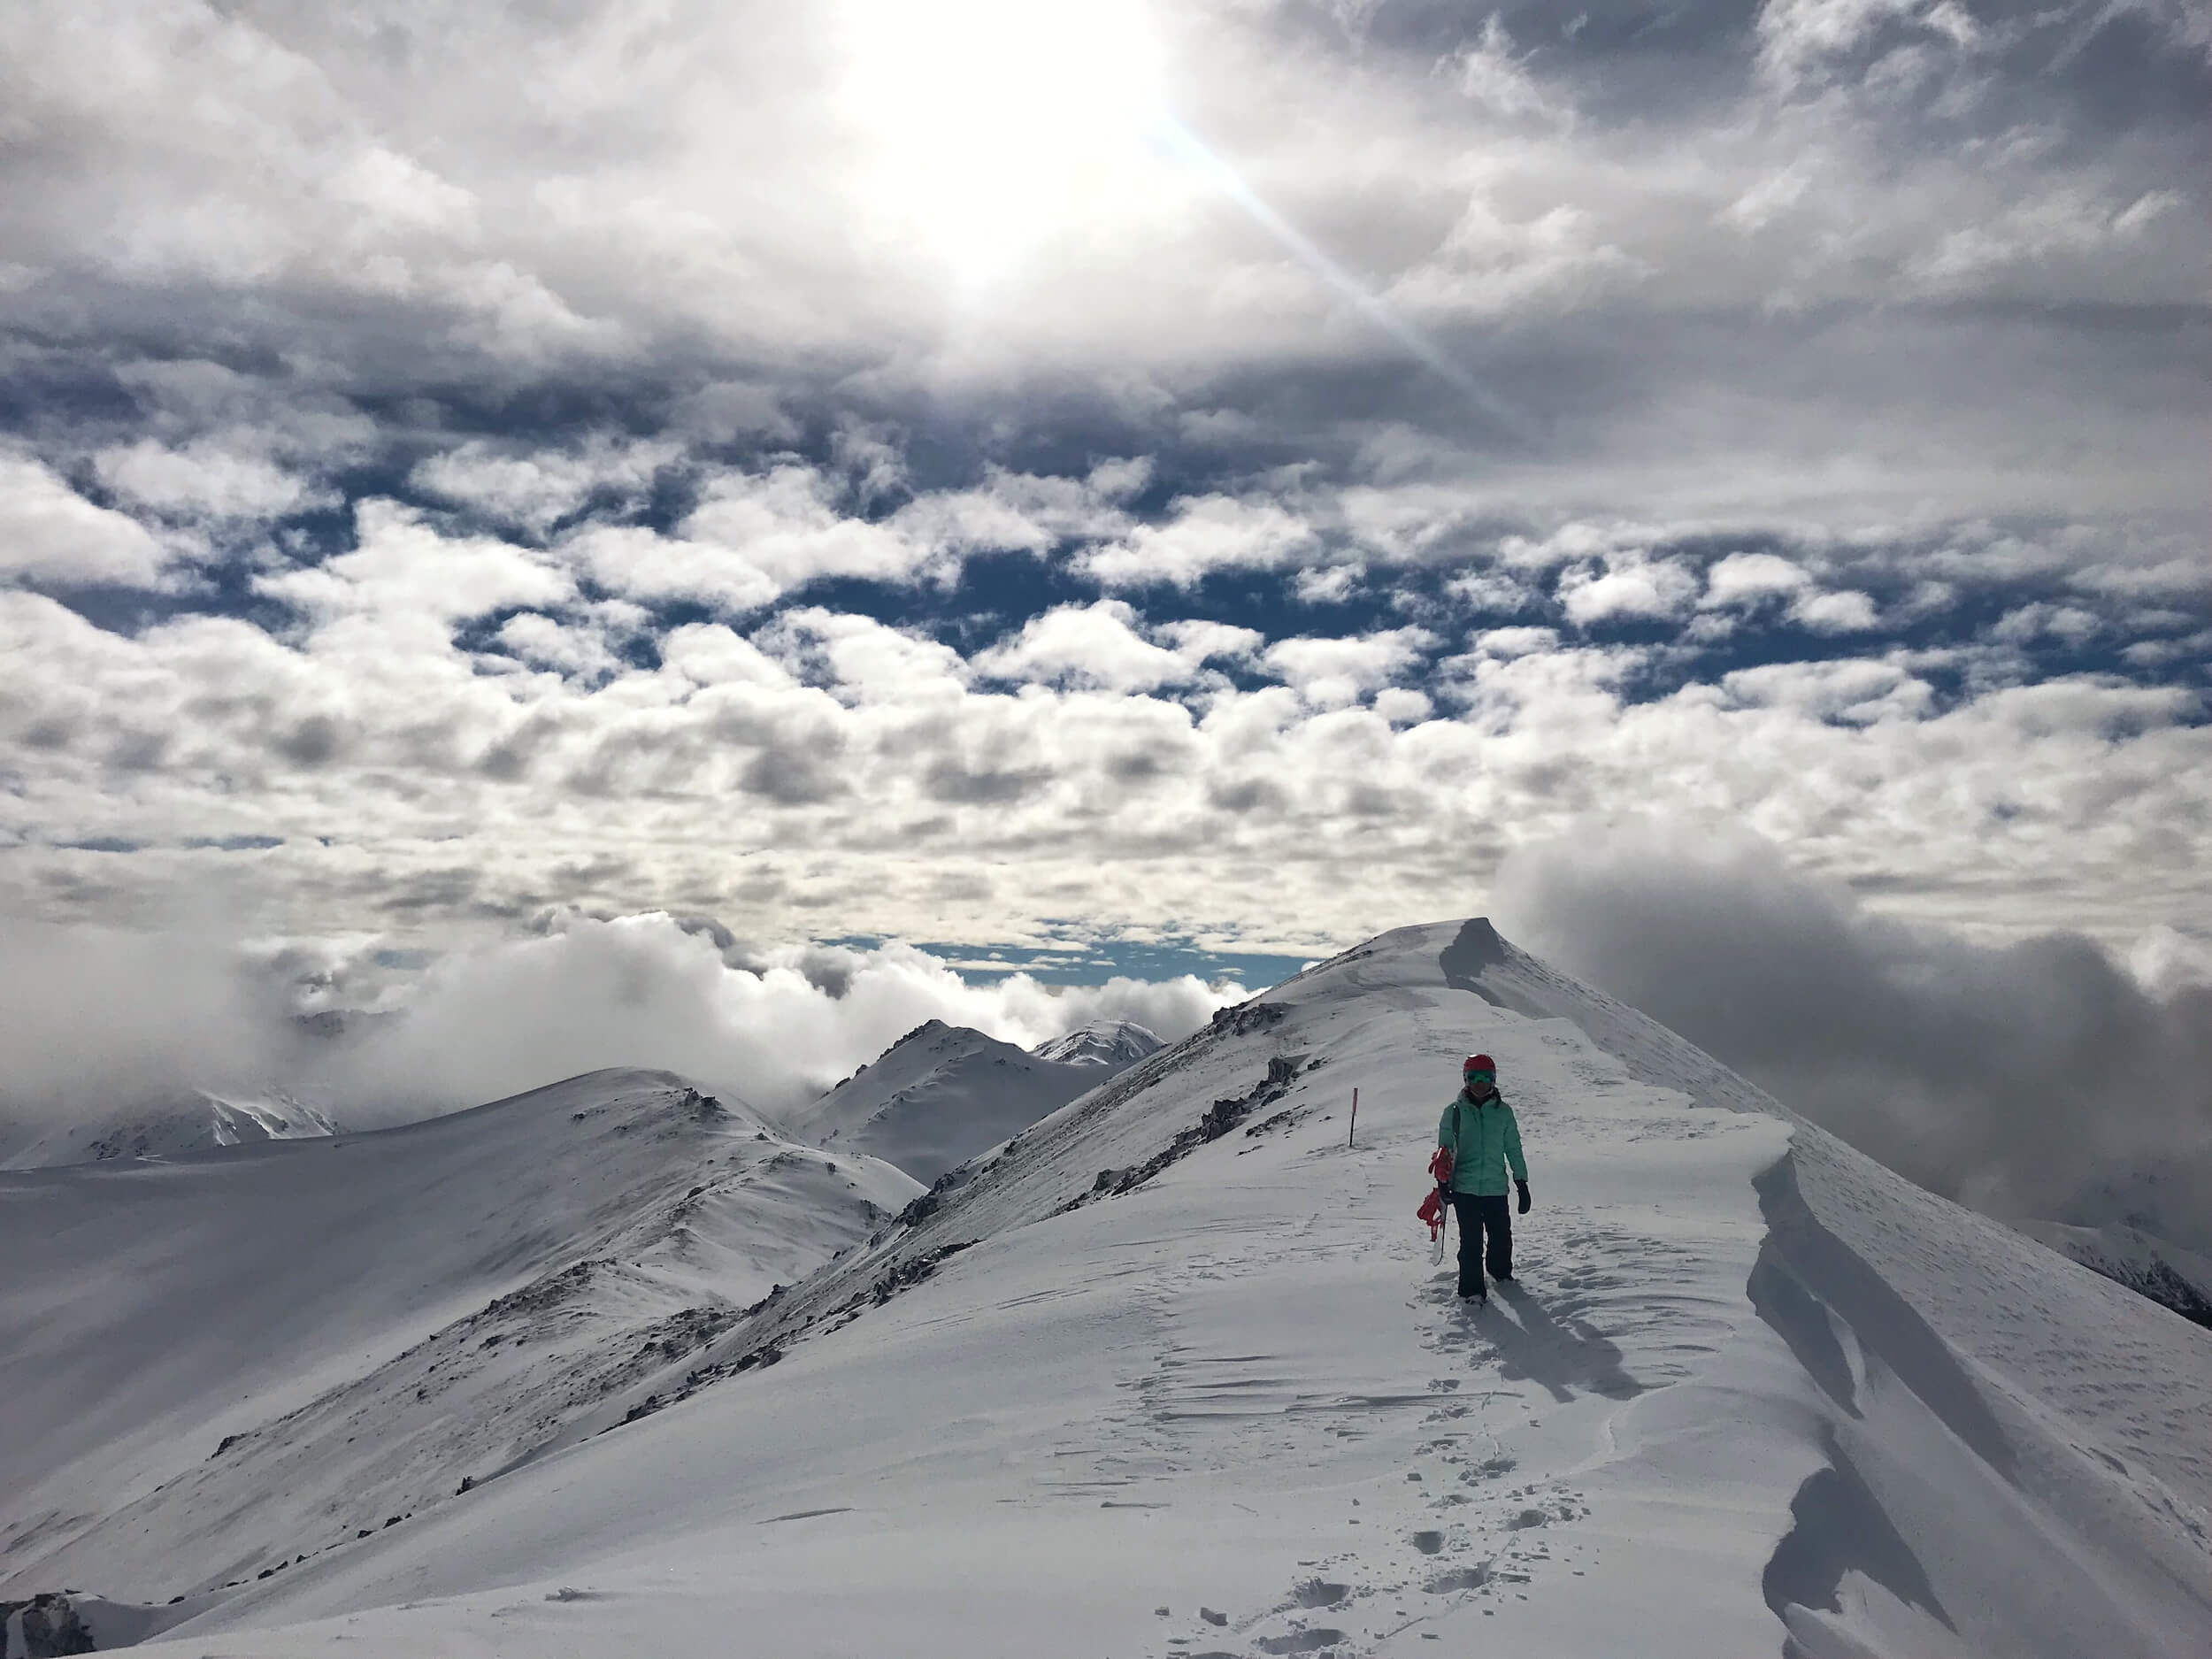 TAKE 5 MINS TO HIKE THE RIDGE LINE TO THE TOP OF MT COCKAYNE TO MAKE THE MOST OF THE COCKAYNE BOWL.